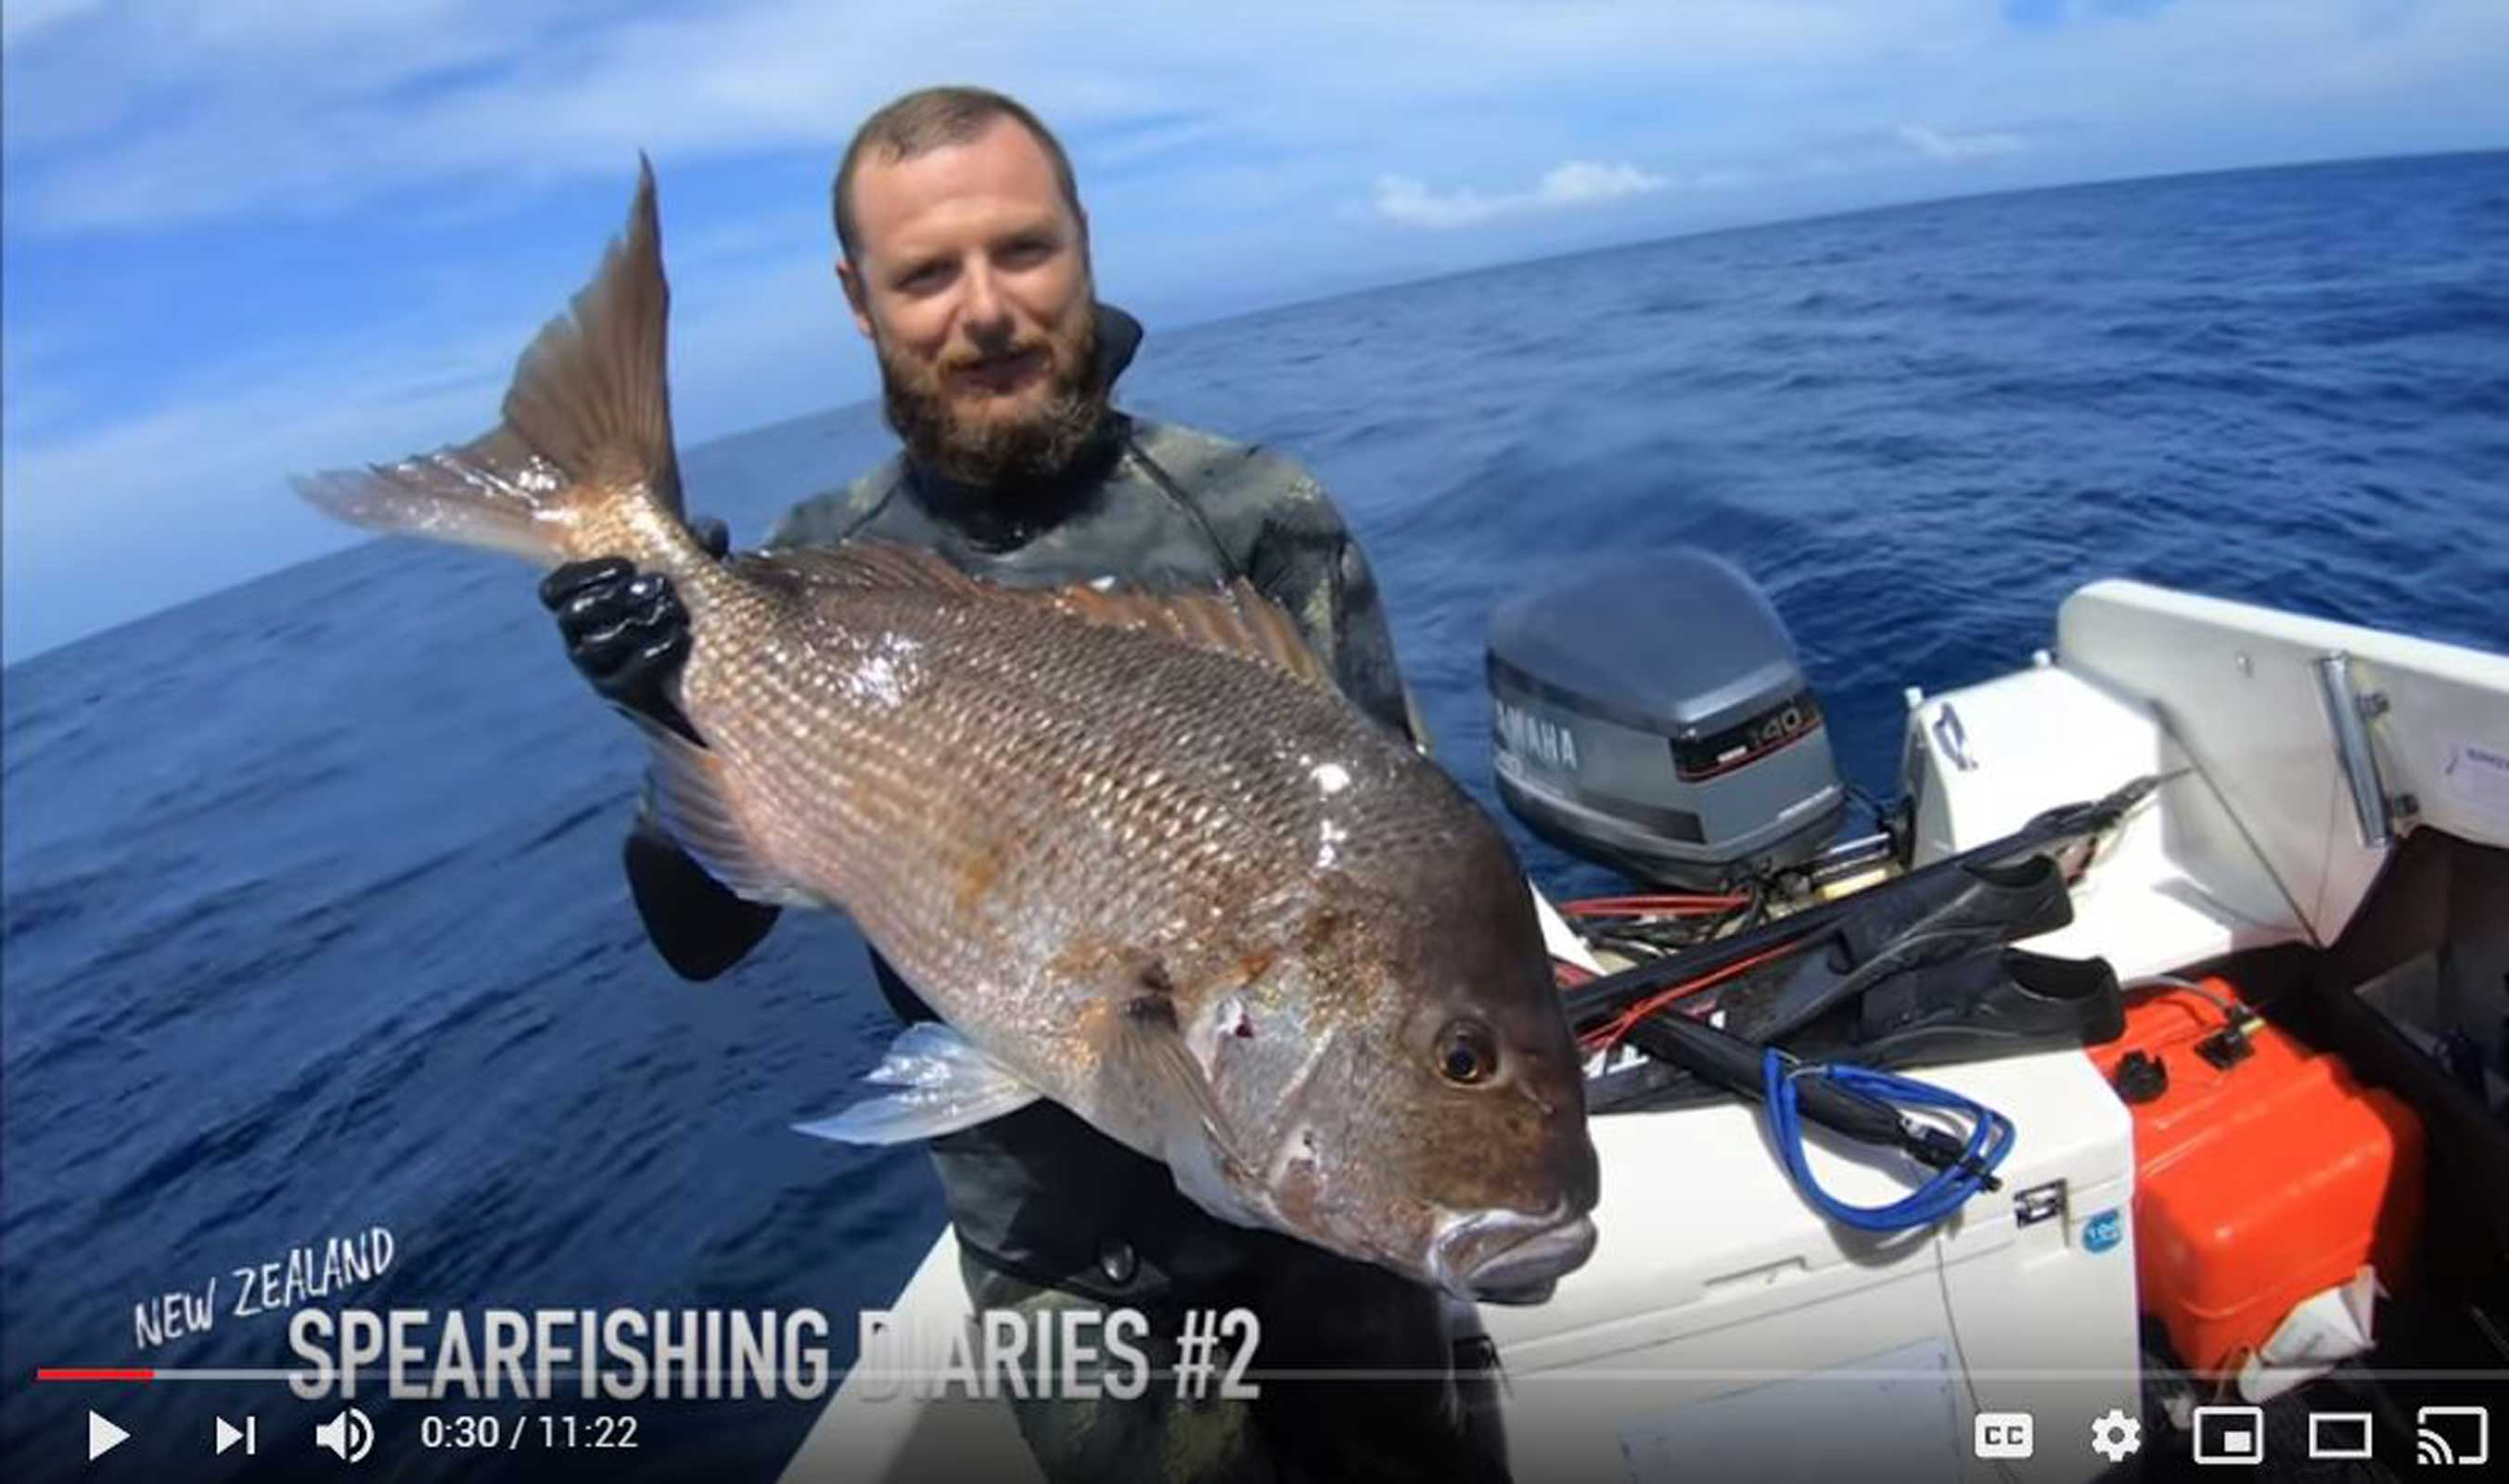 New Zealand Spearfishing Diaries: Part 2